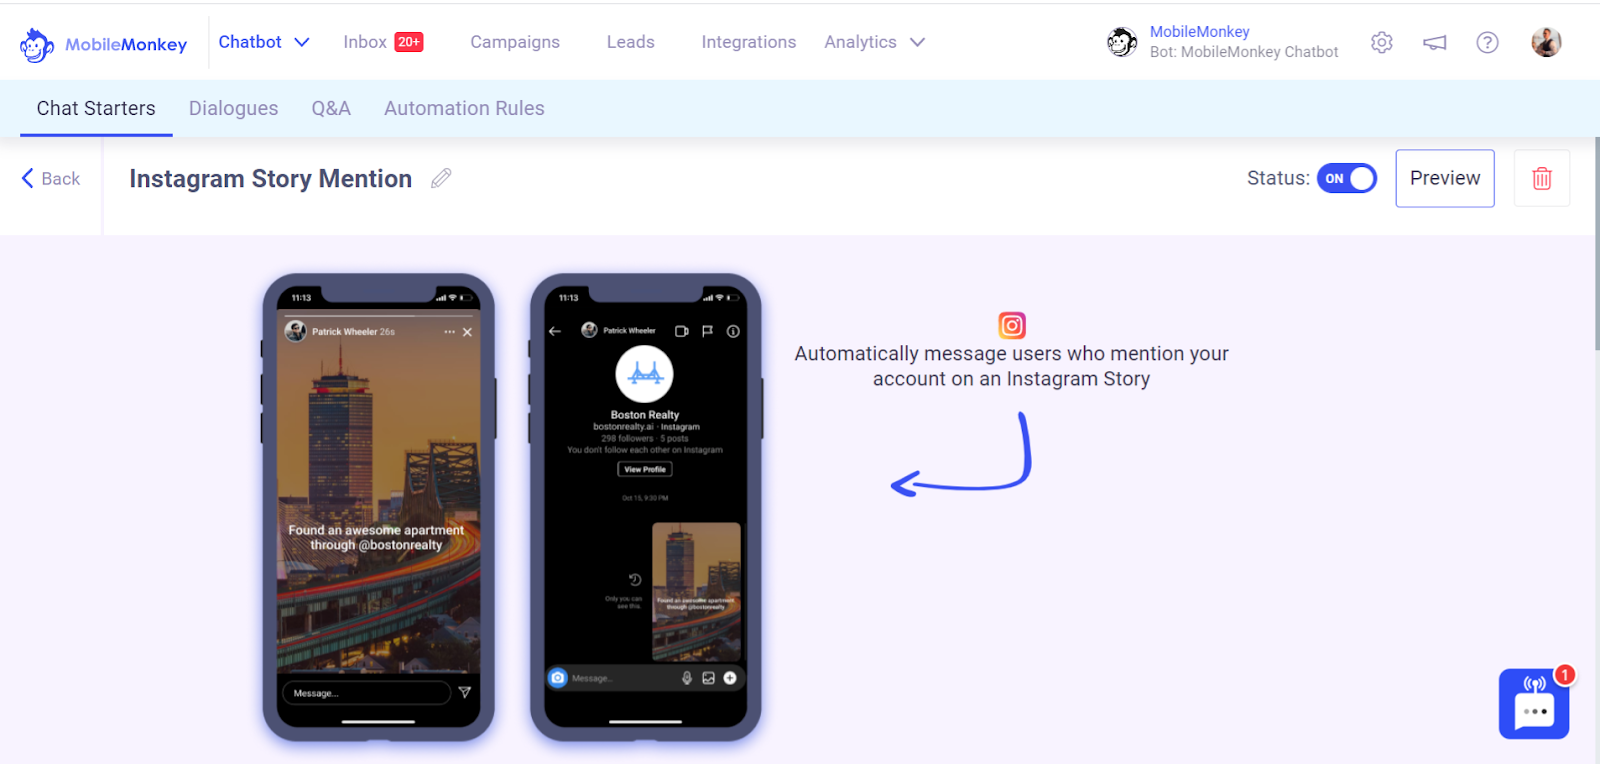 how to automatically message users who mention your account on an Instagram Story